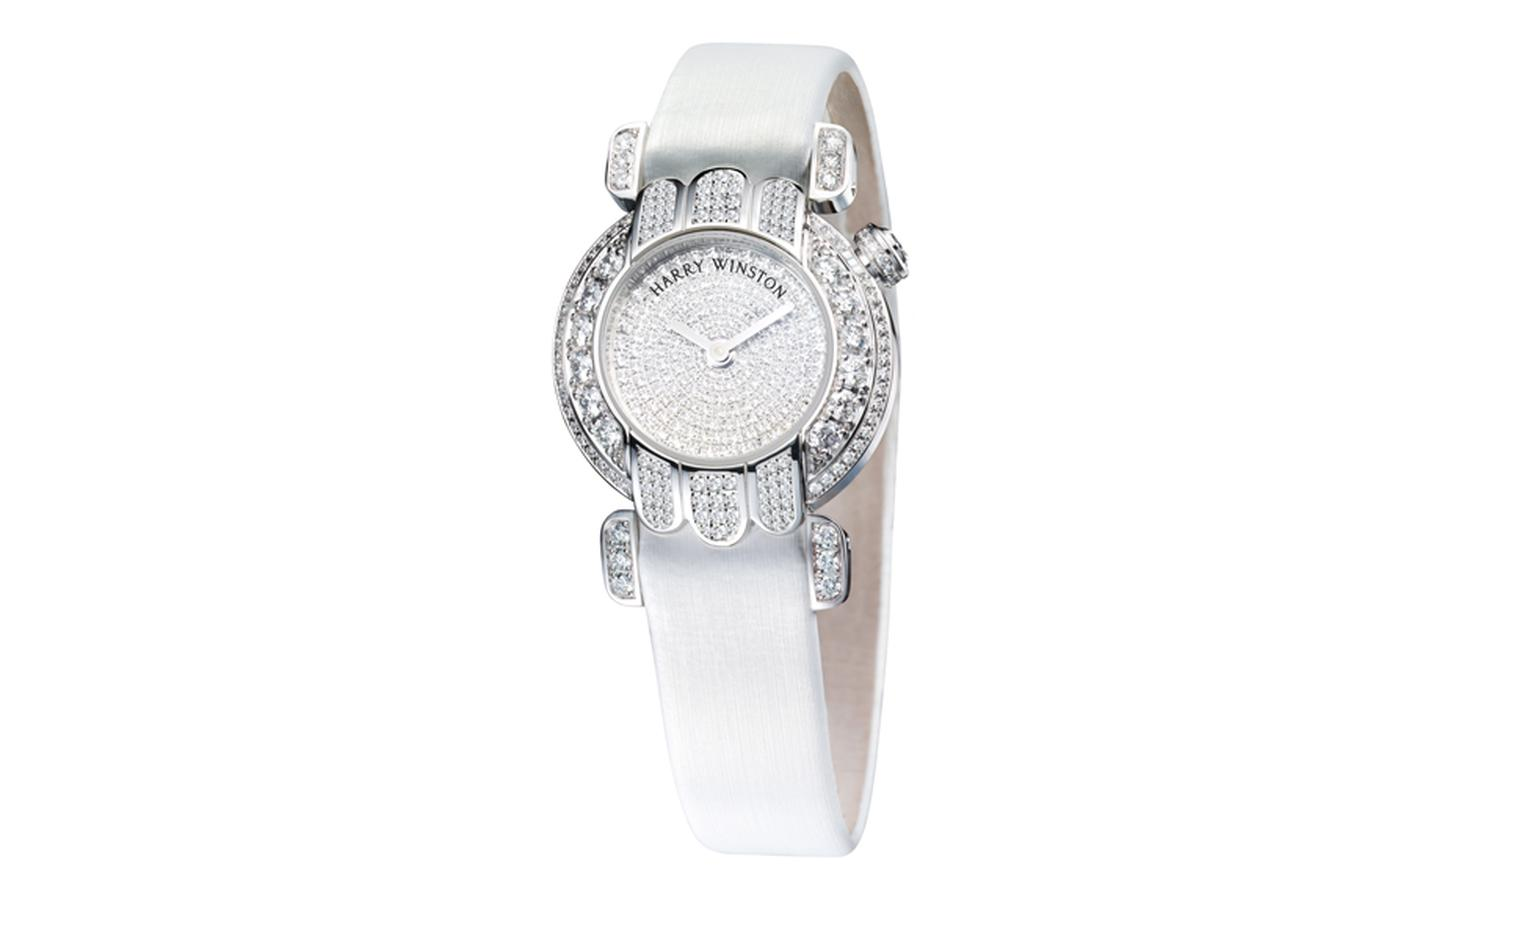 HARRY WINSTON, Premier Bijou, white gold dial set with diamonds.